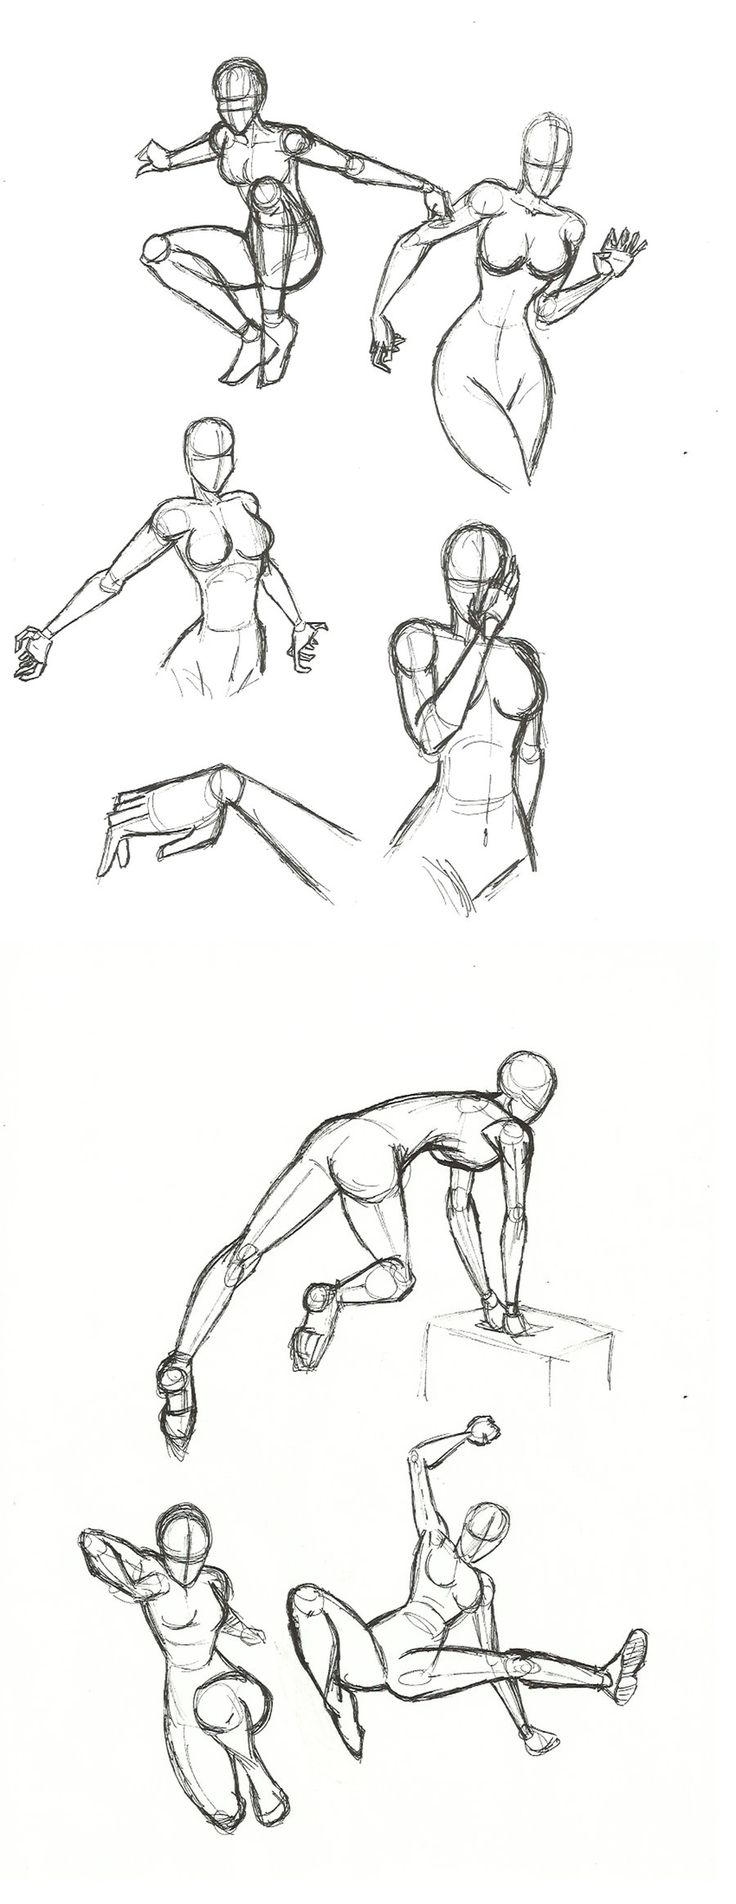 best ideas about dynamic poses body reference i have to admit i don t use photo references often since i don t necessary want a realist anatomy feeling it s not the only way either but it s probably